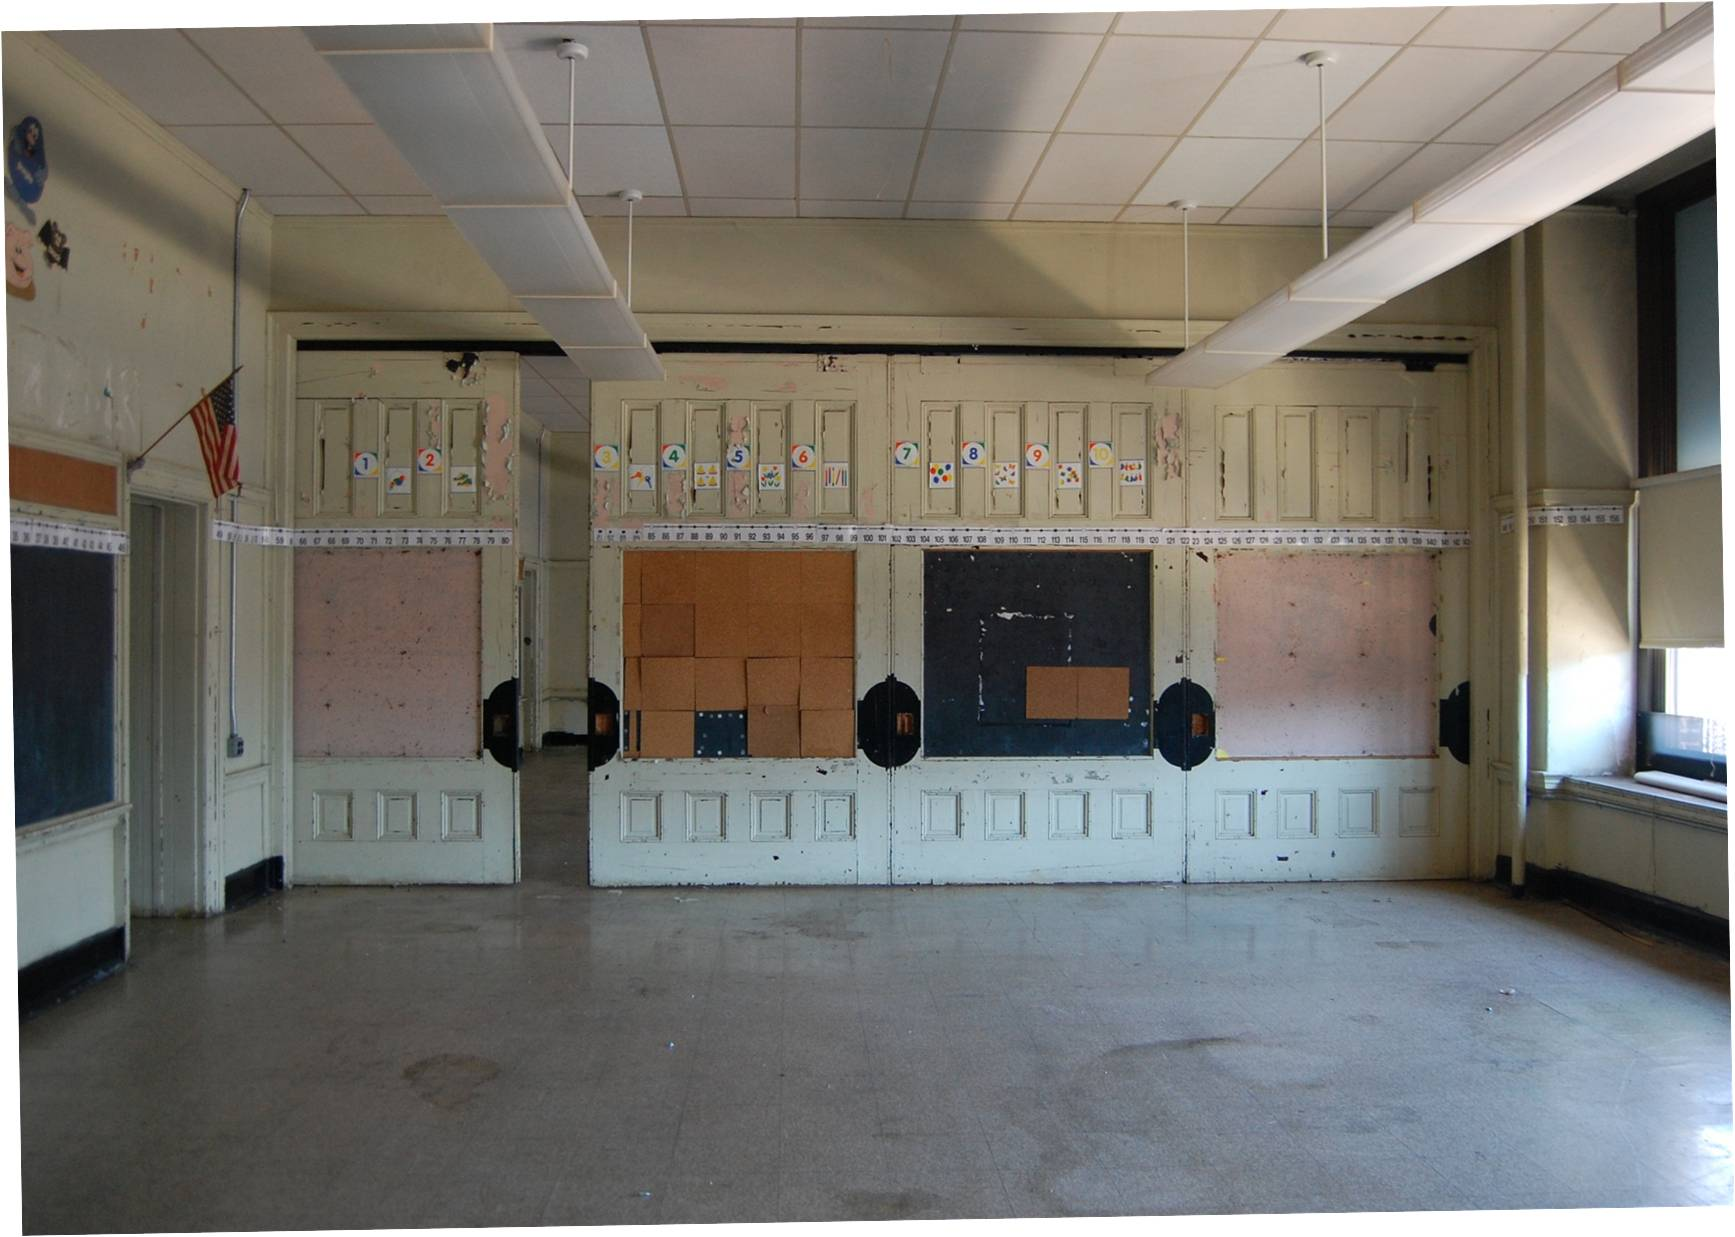 Old Frances Willard School still has classic millwork like these sliding partitions | courtesy of Community Design Collaborative